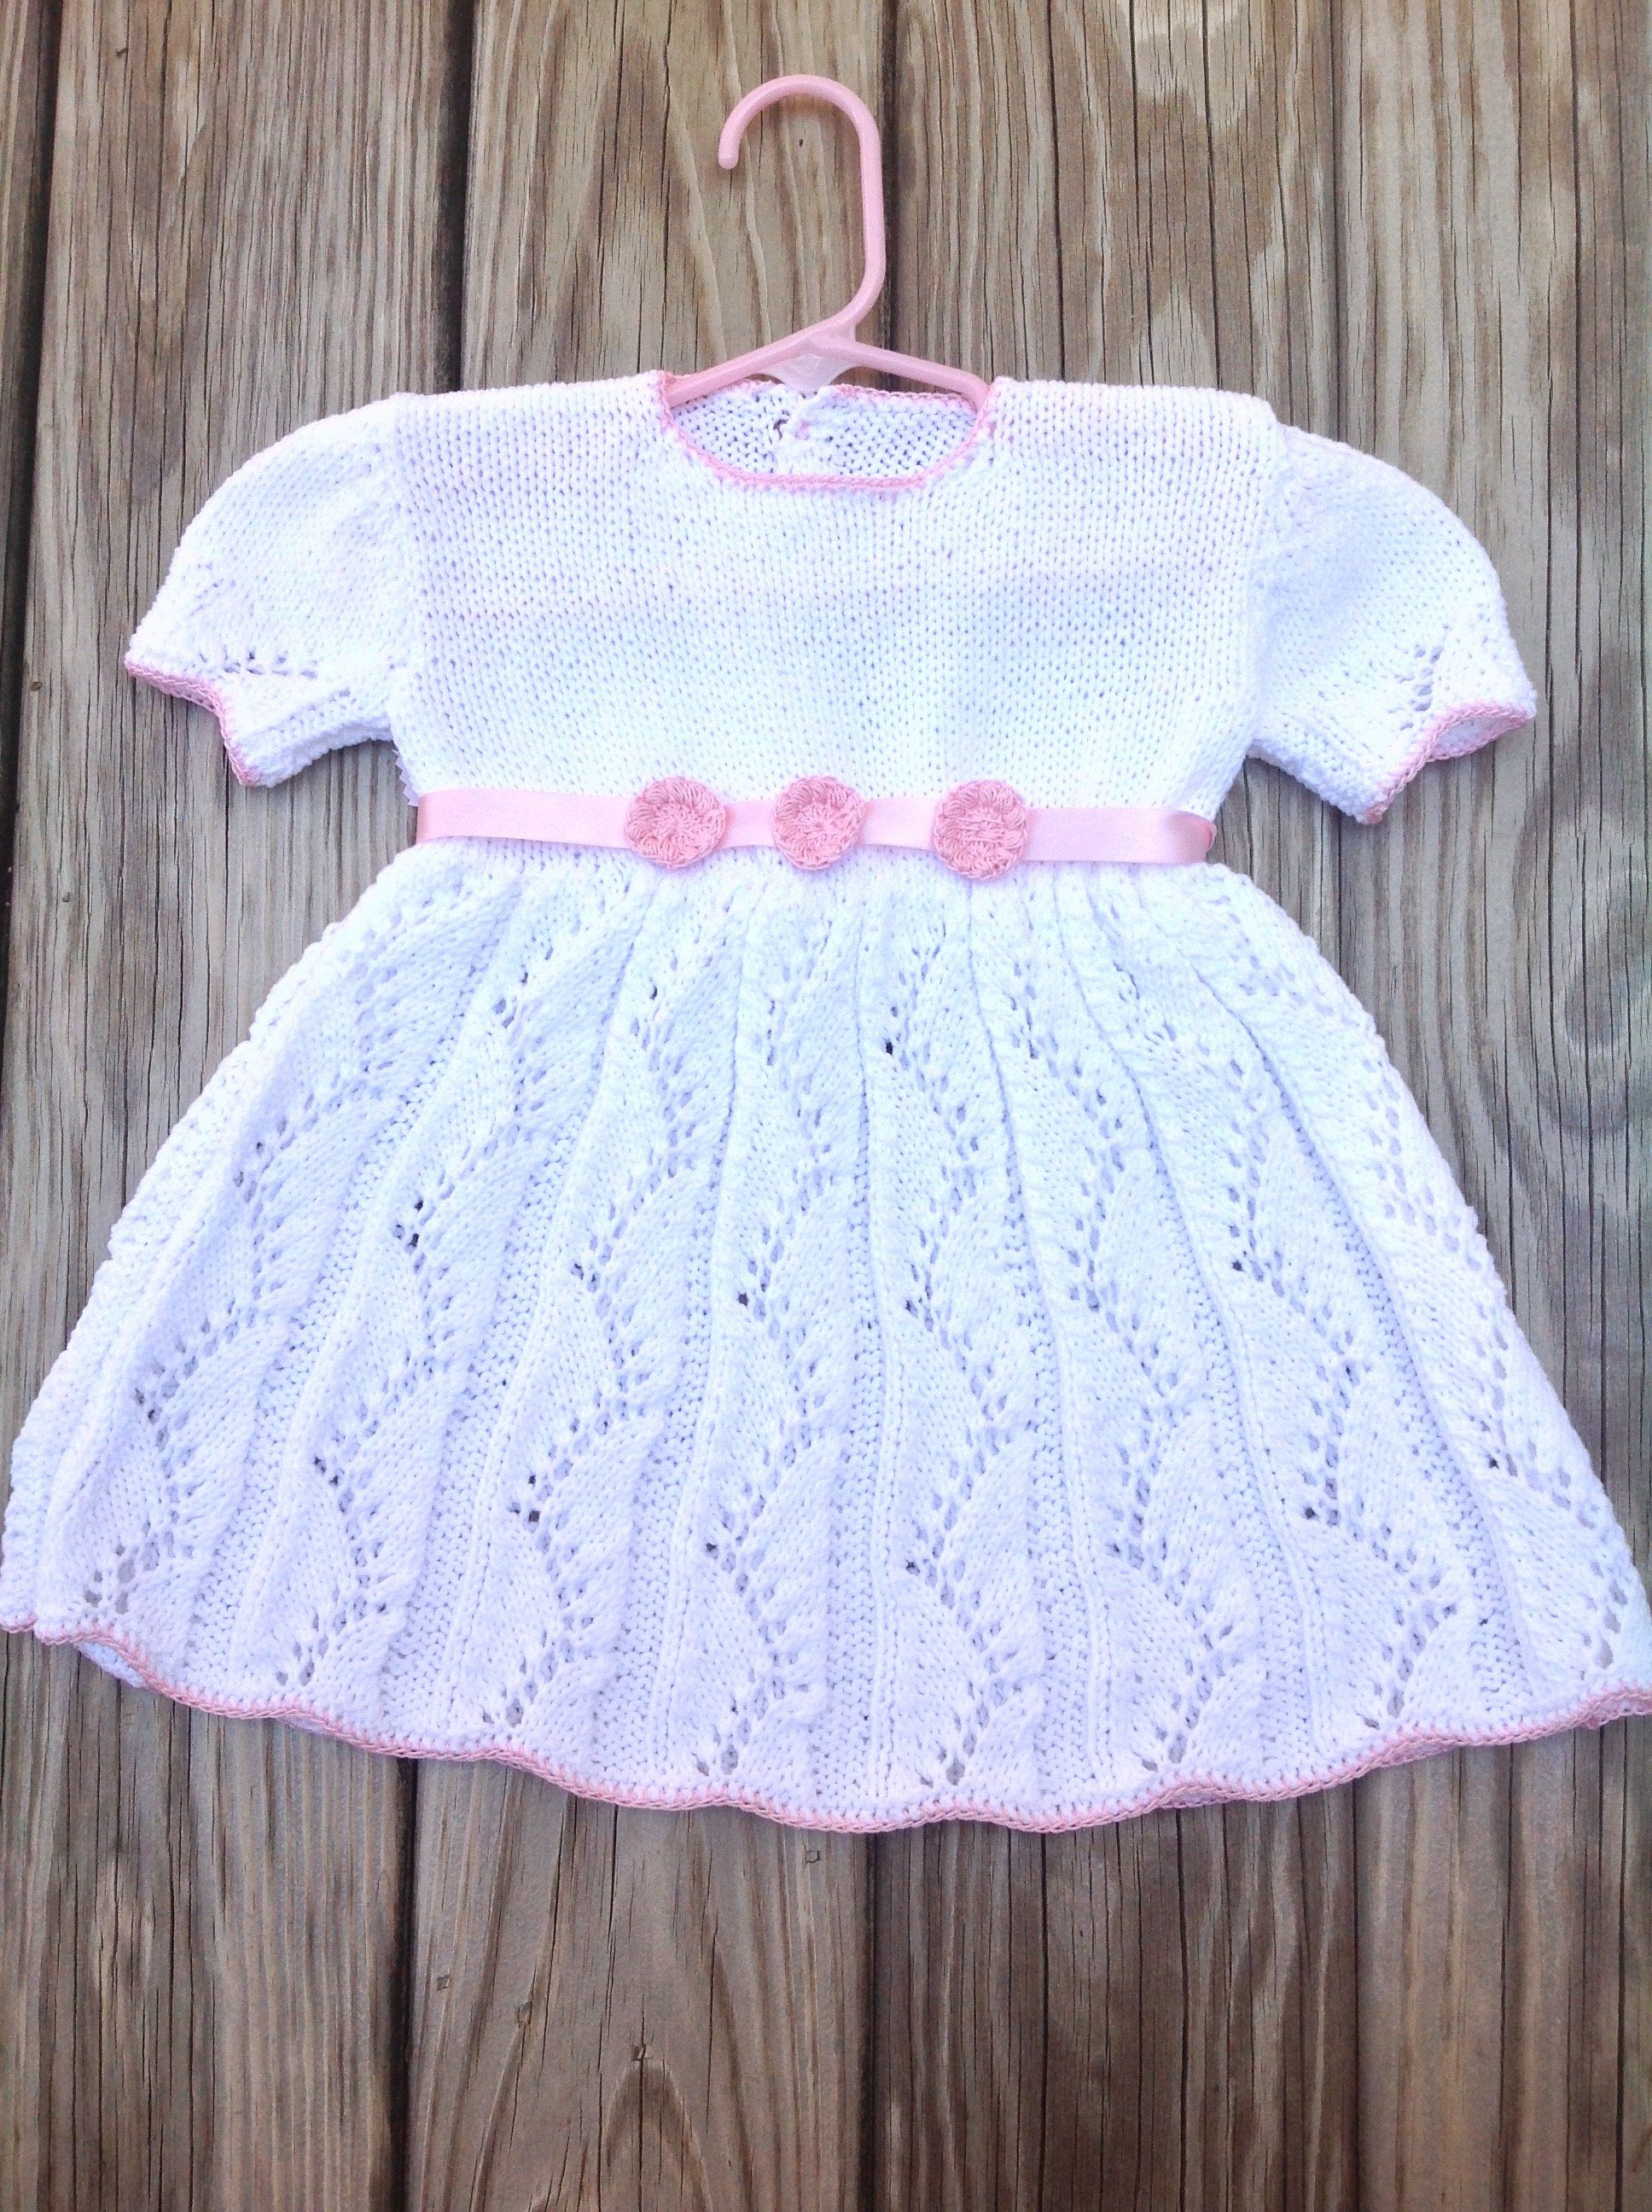 Knit baby dress with pink belt knitted white dress pink crochet